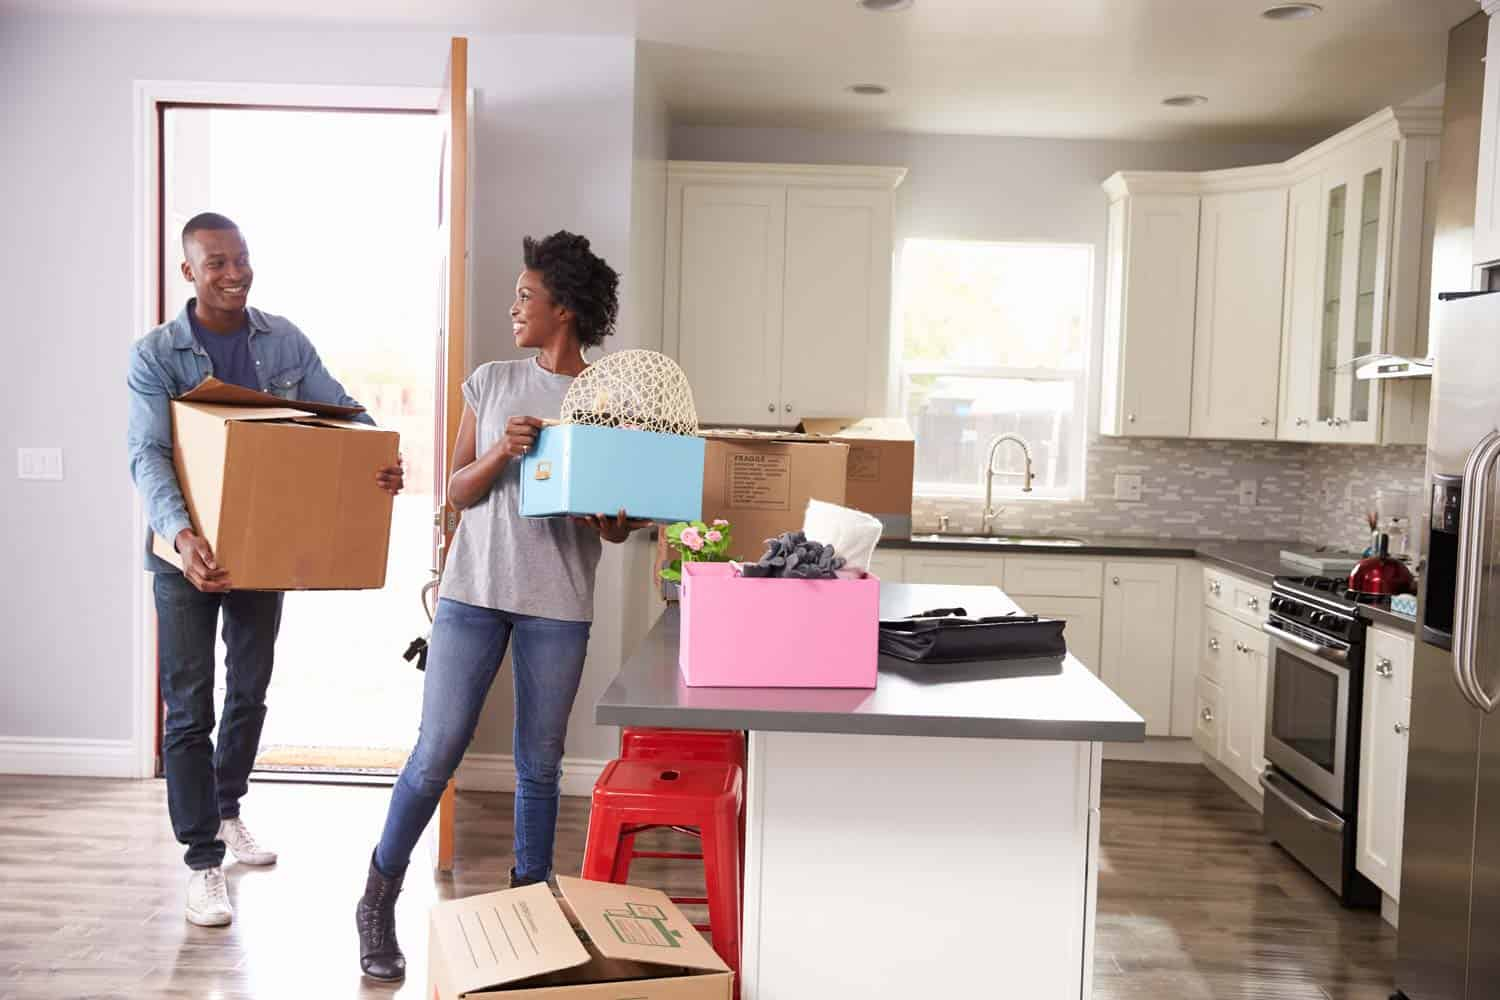 6. INVENTORY & MOVING DAY